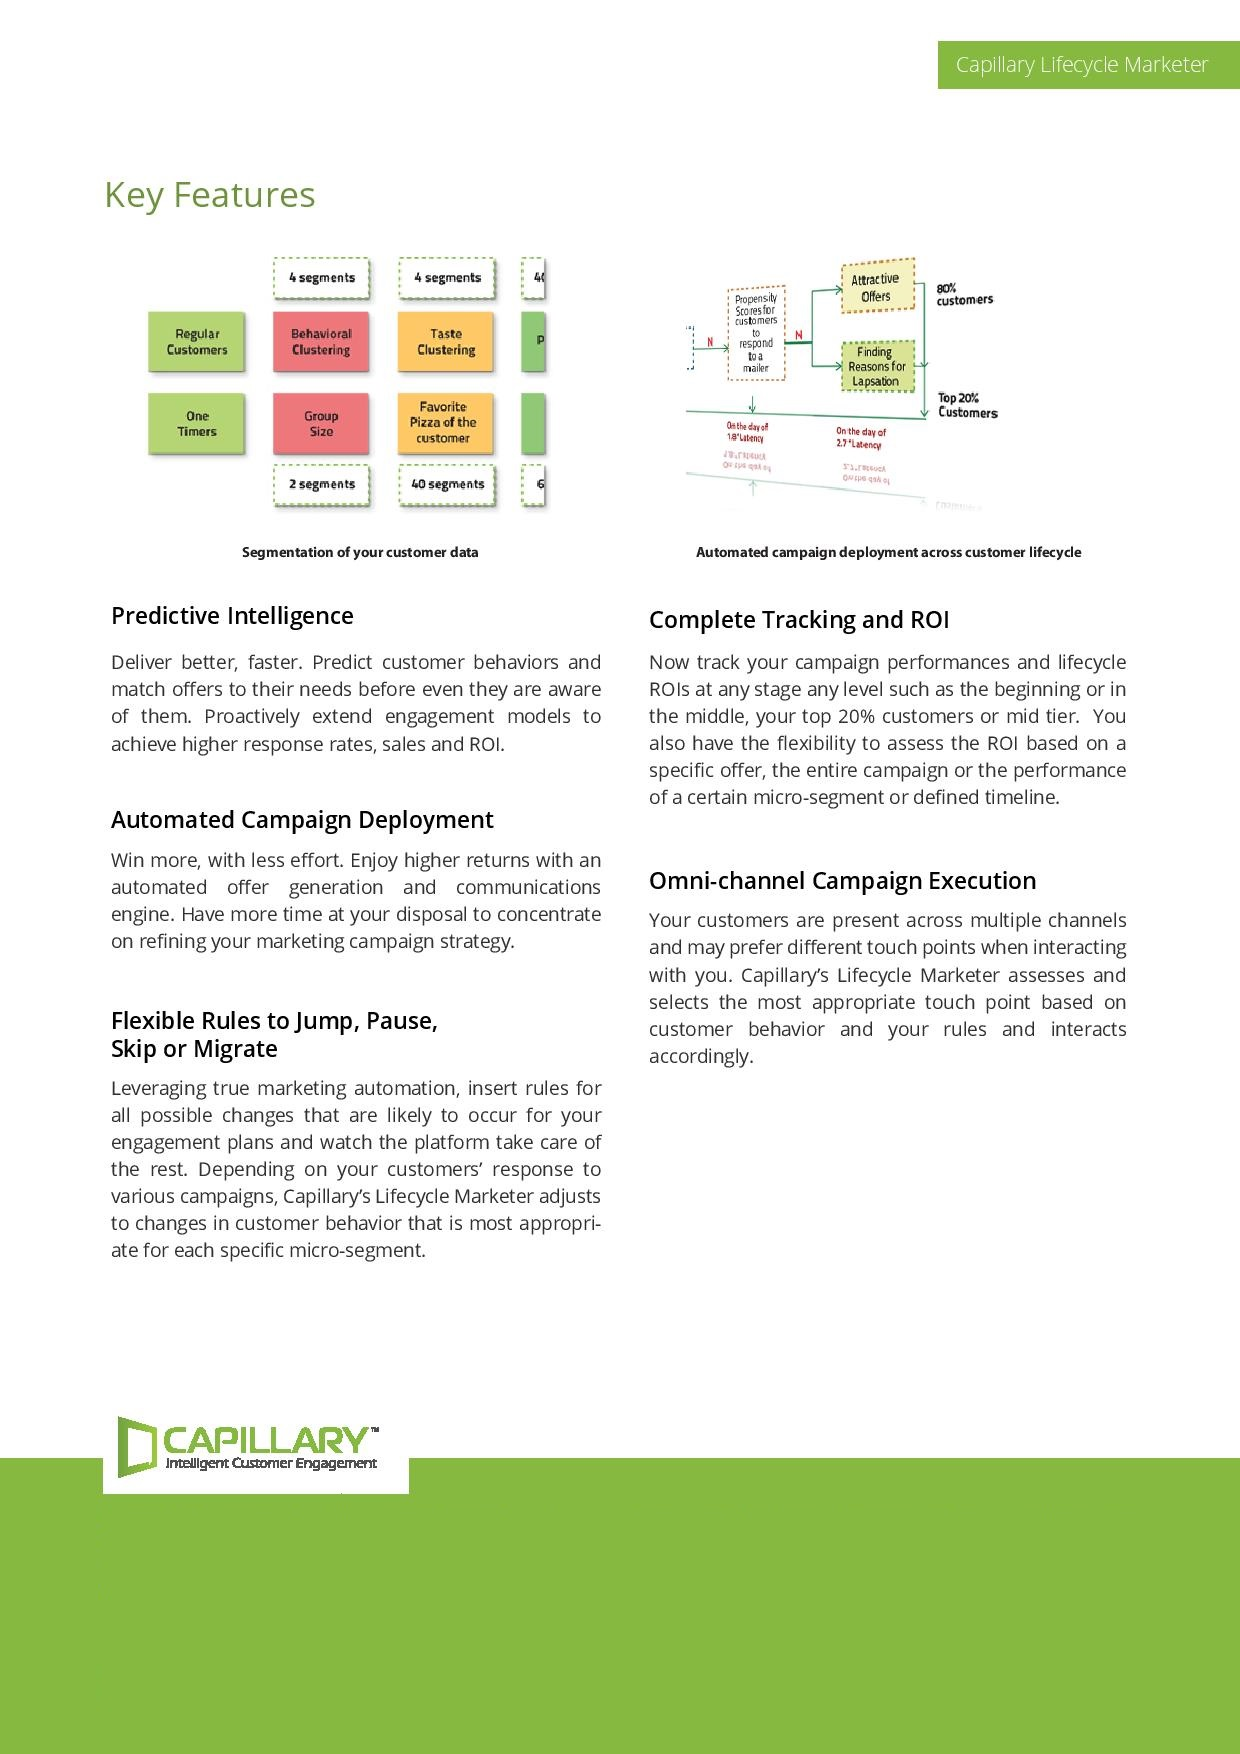 capillary_datasheet_lifecycle-marketer-page-002